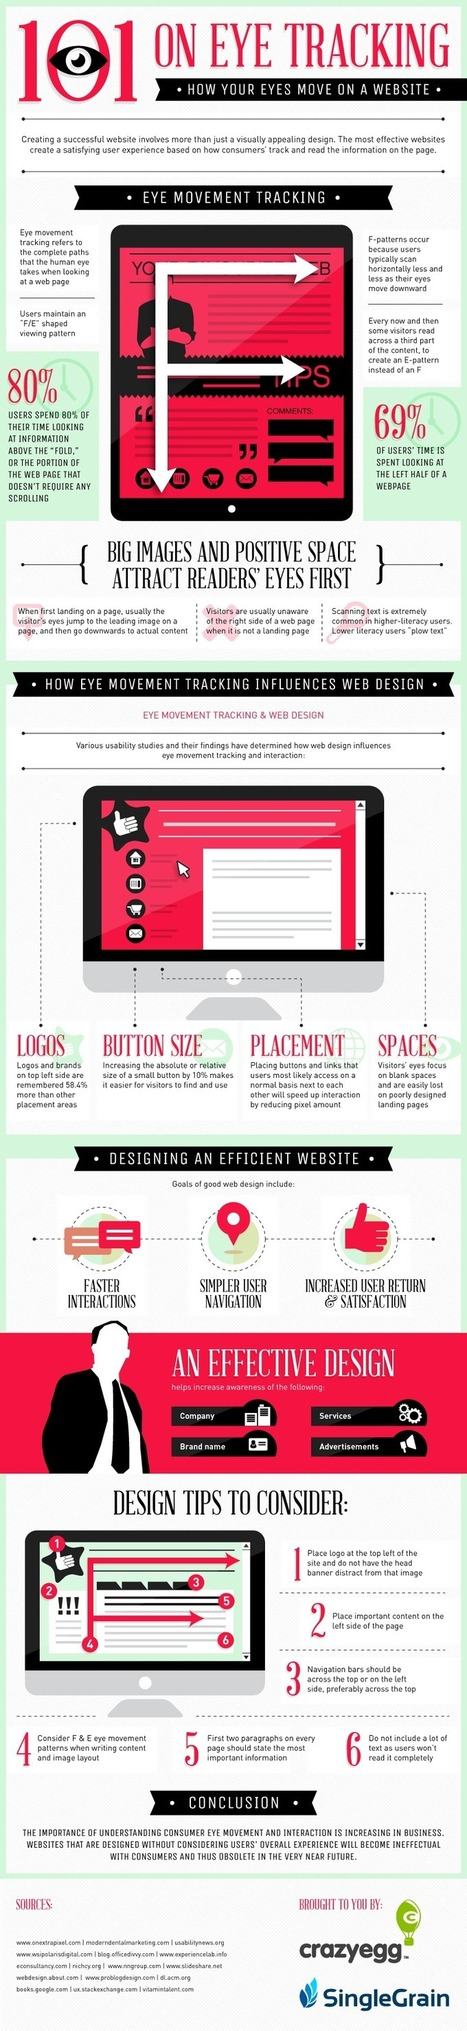 How You Eyes Move On a Website (Infographic) via @malekalby | Actu - ergonomie et parcours  web | Scoop.it